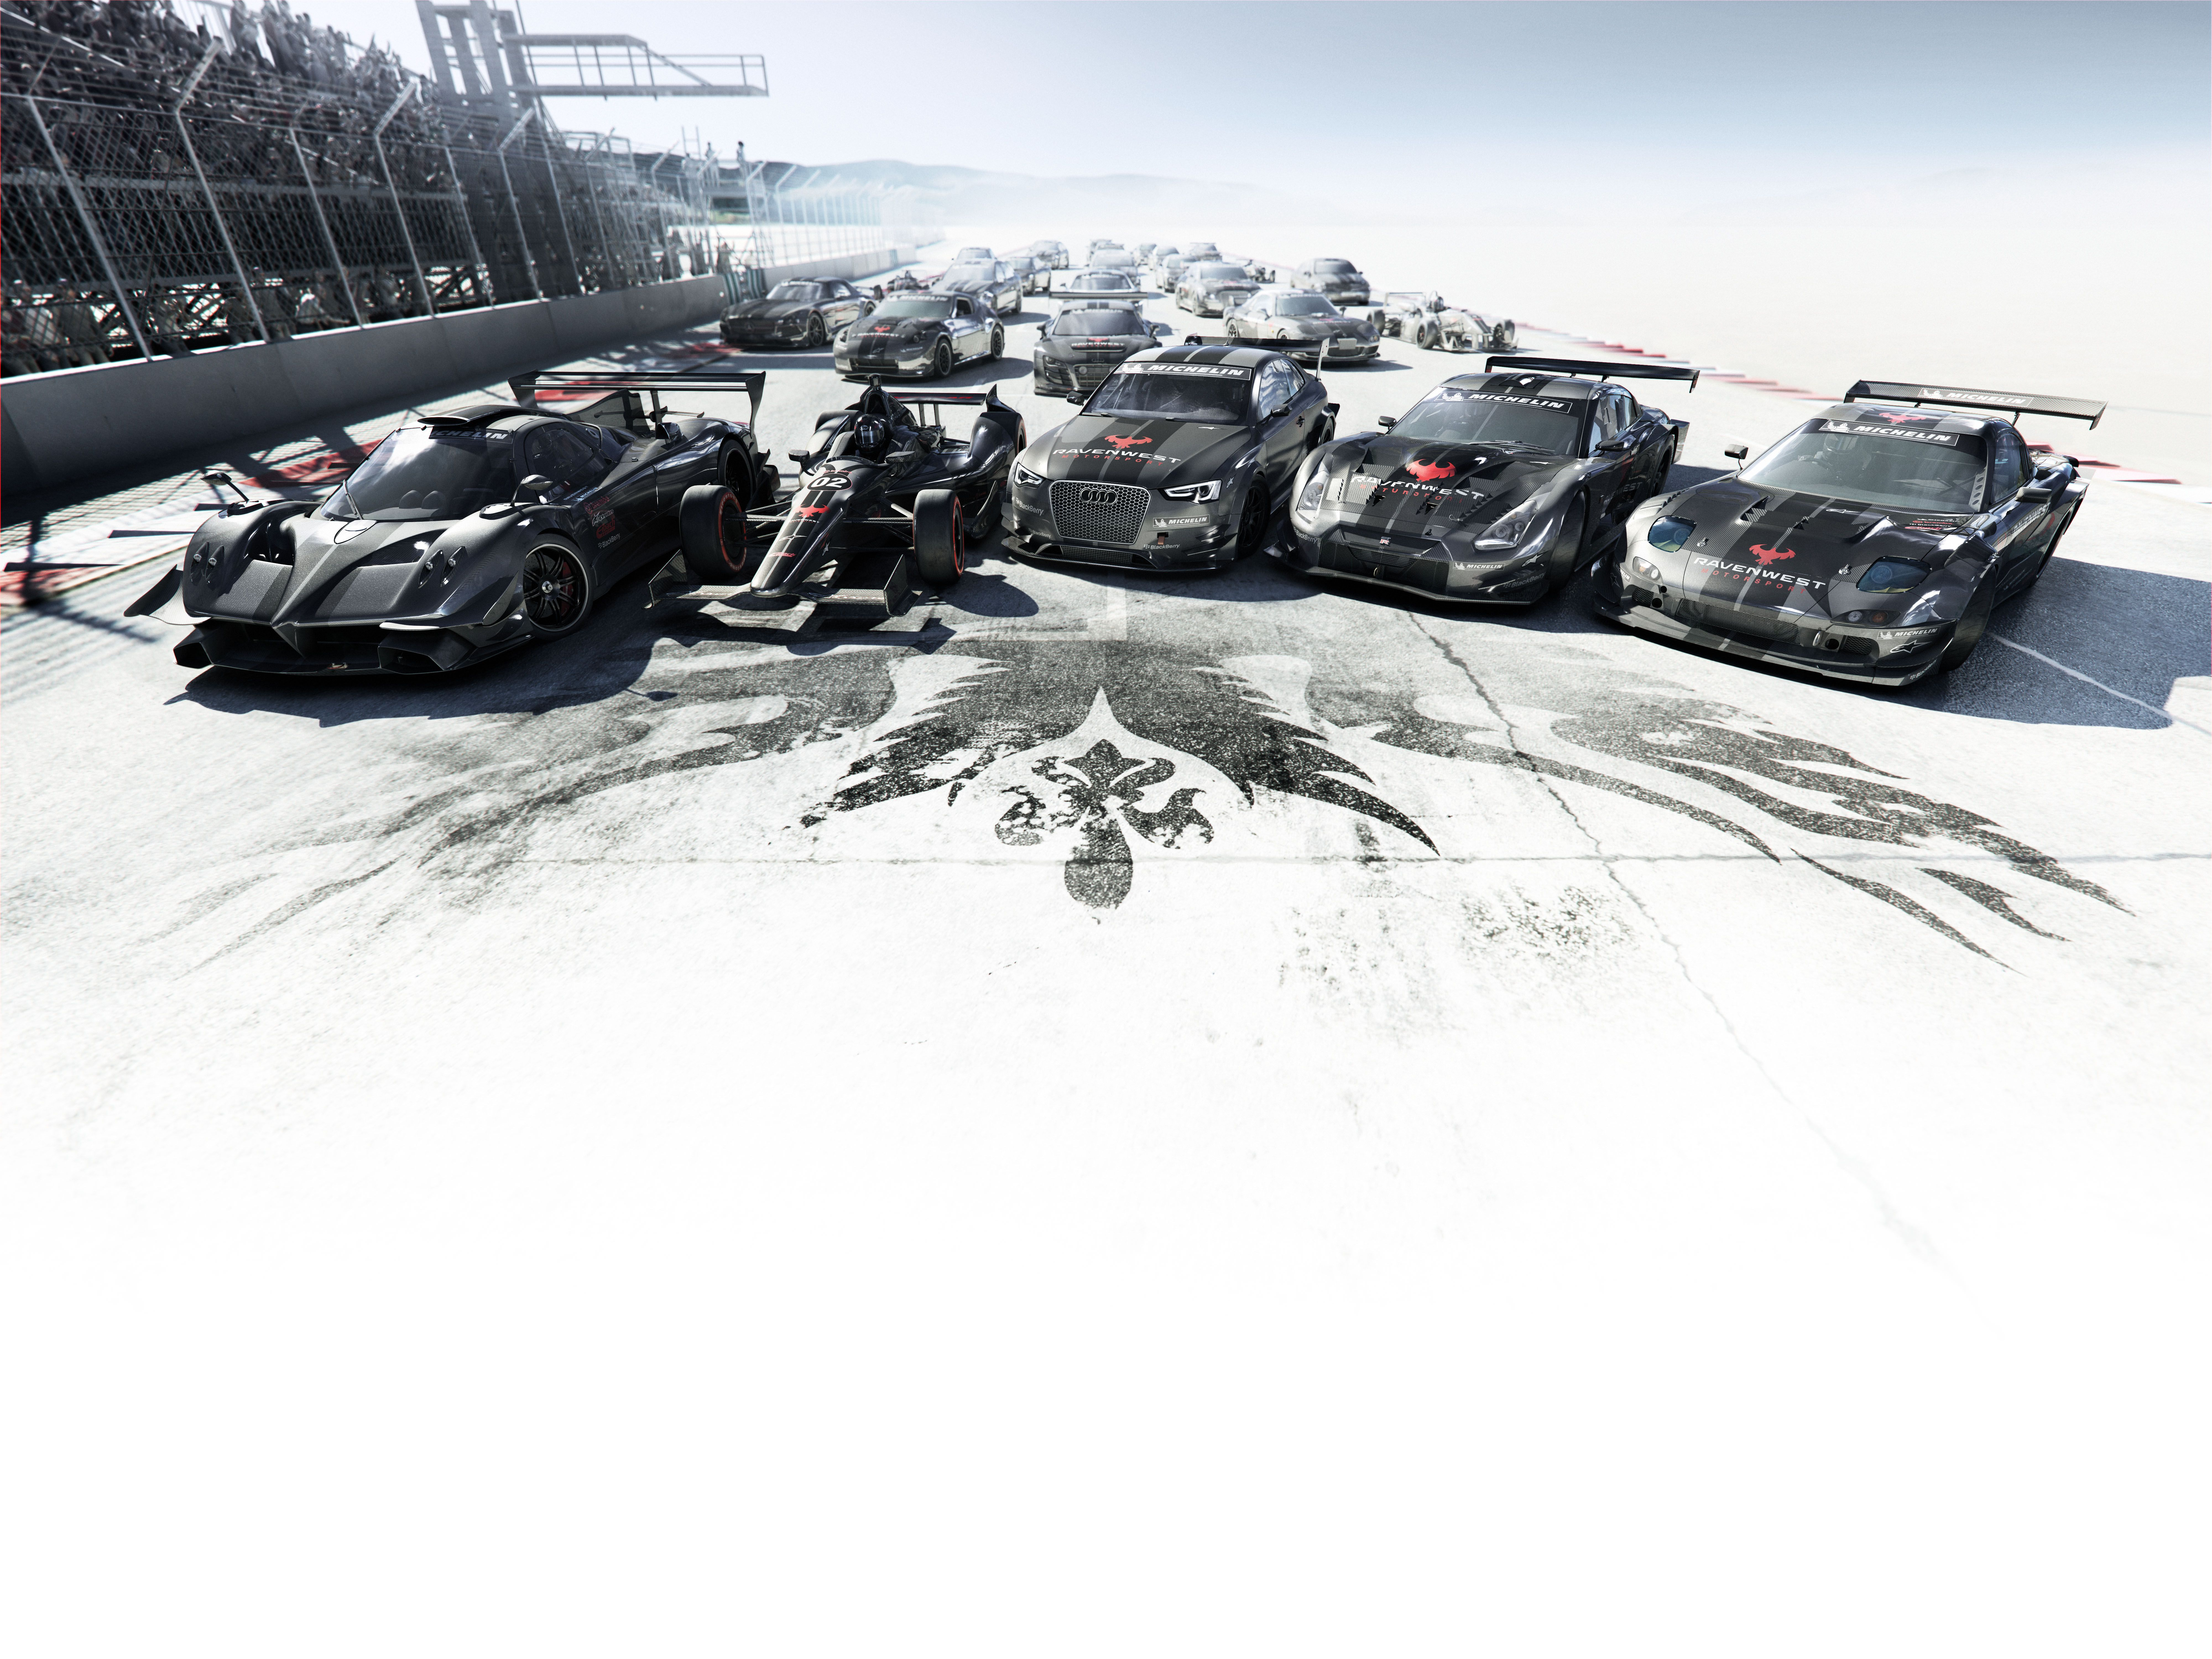 6souls games grid that with racing autosport more your race youll game from its into will cars were handling have some touring feedback this about each then community great make disciplines also there authentic which practice discipline within back where theres career coming release like content style entirely when core weve